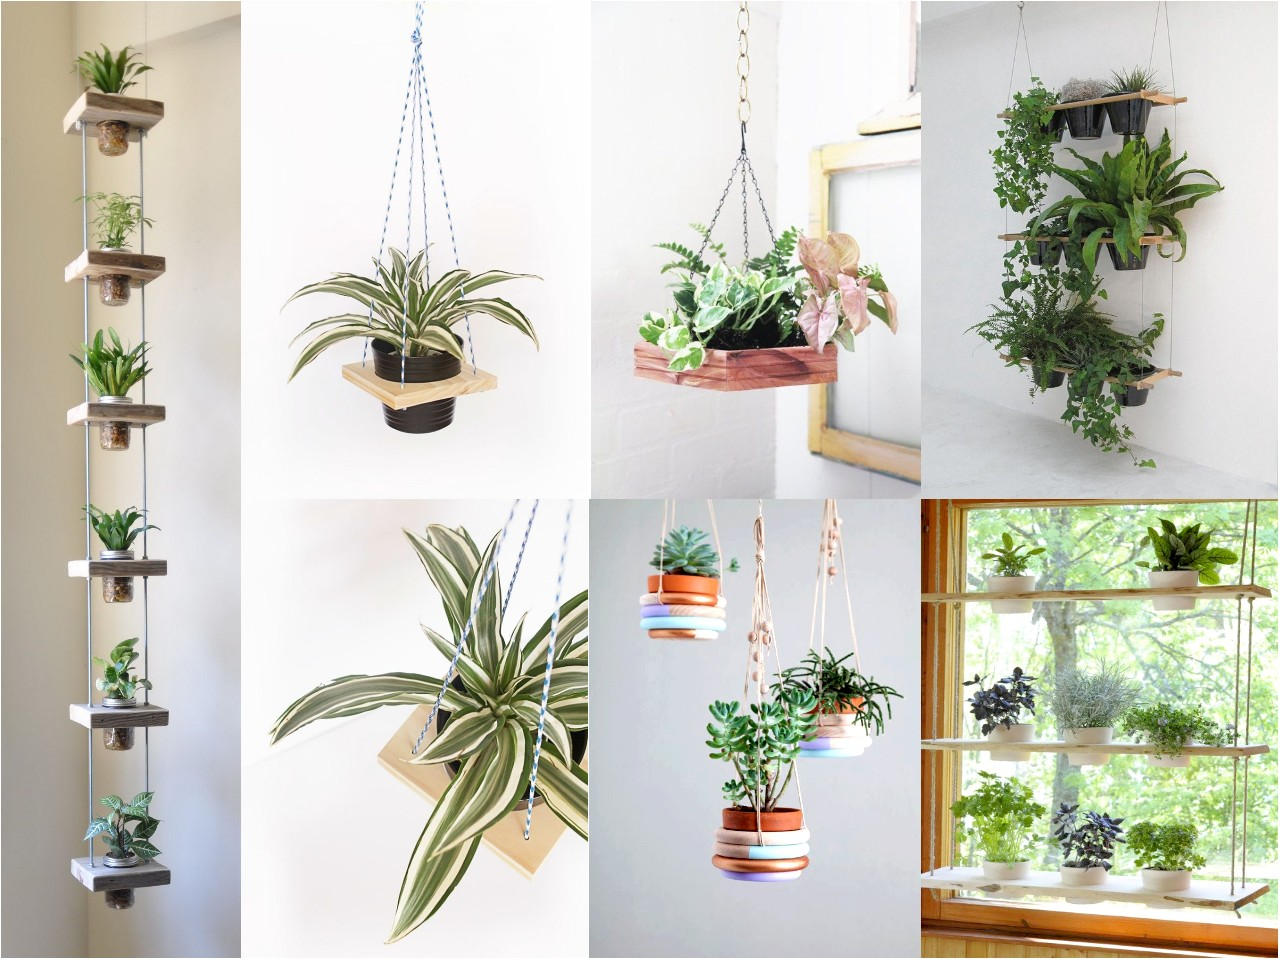 10 ideas de decoraci n con plantas colgantes for Plantas de colgar de interior